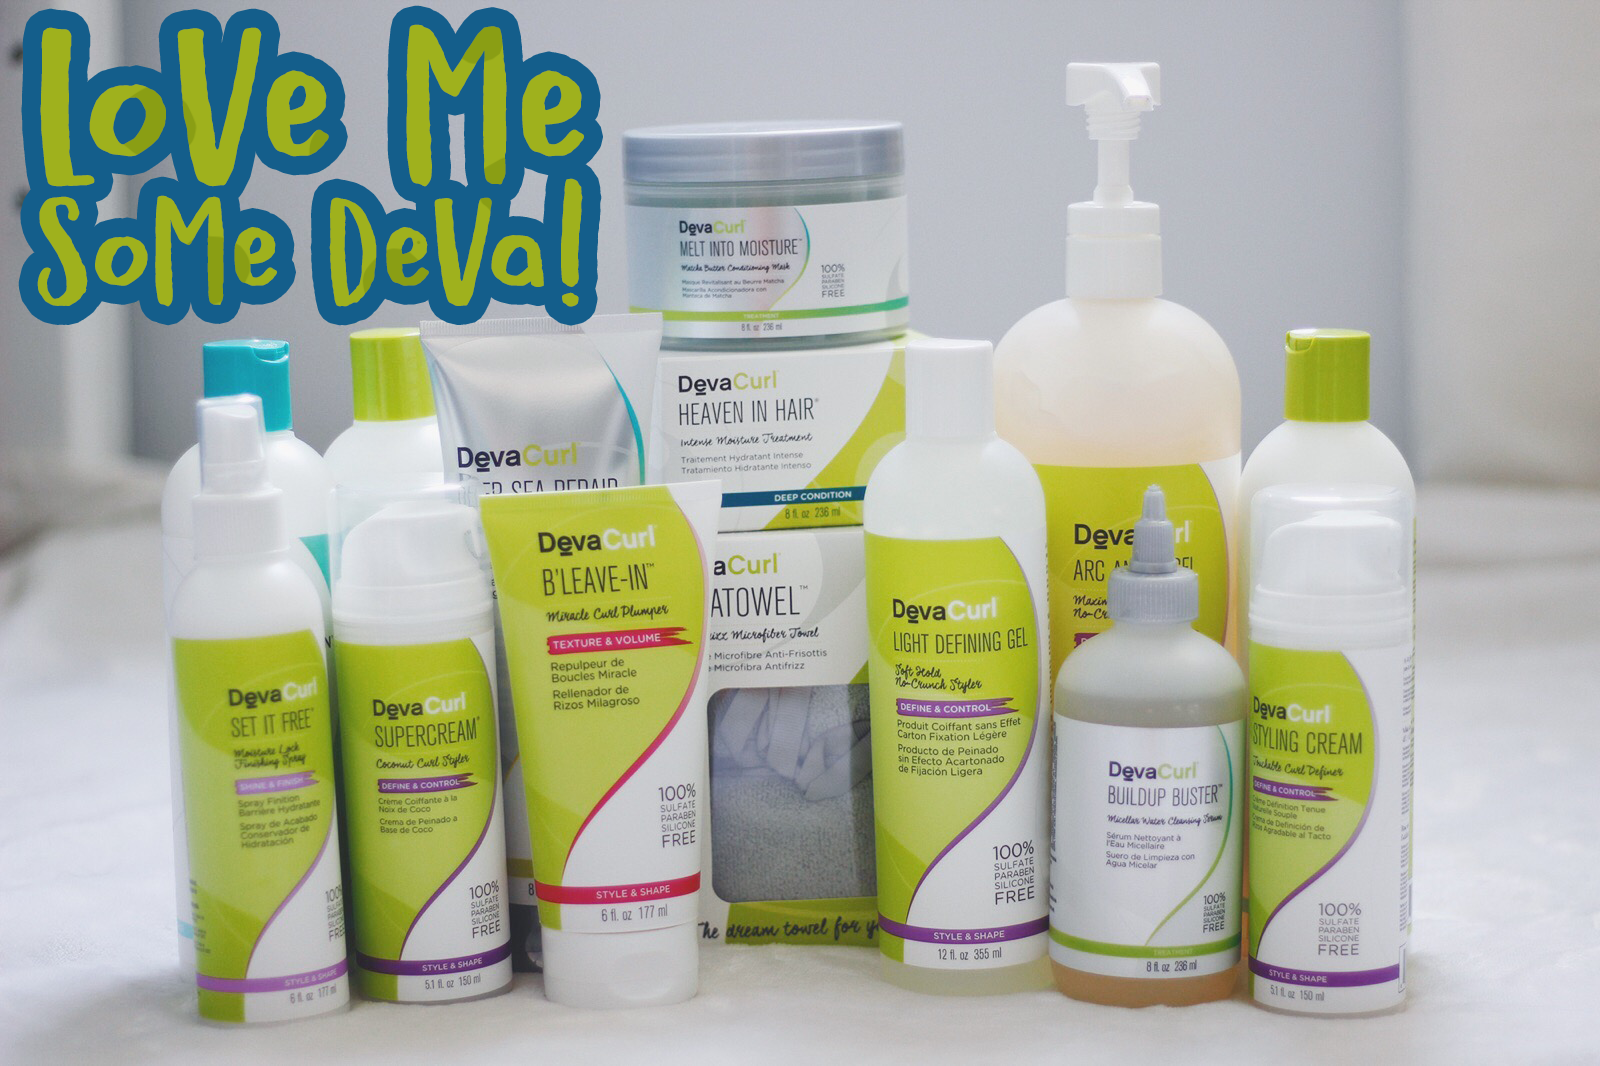 DevaCurl Products